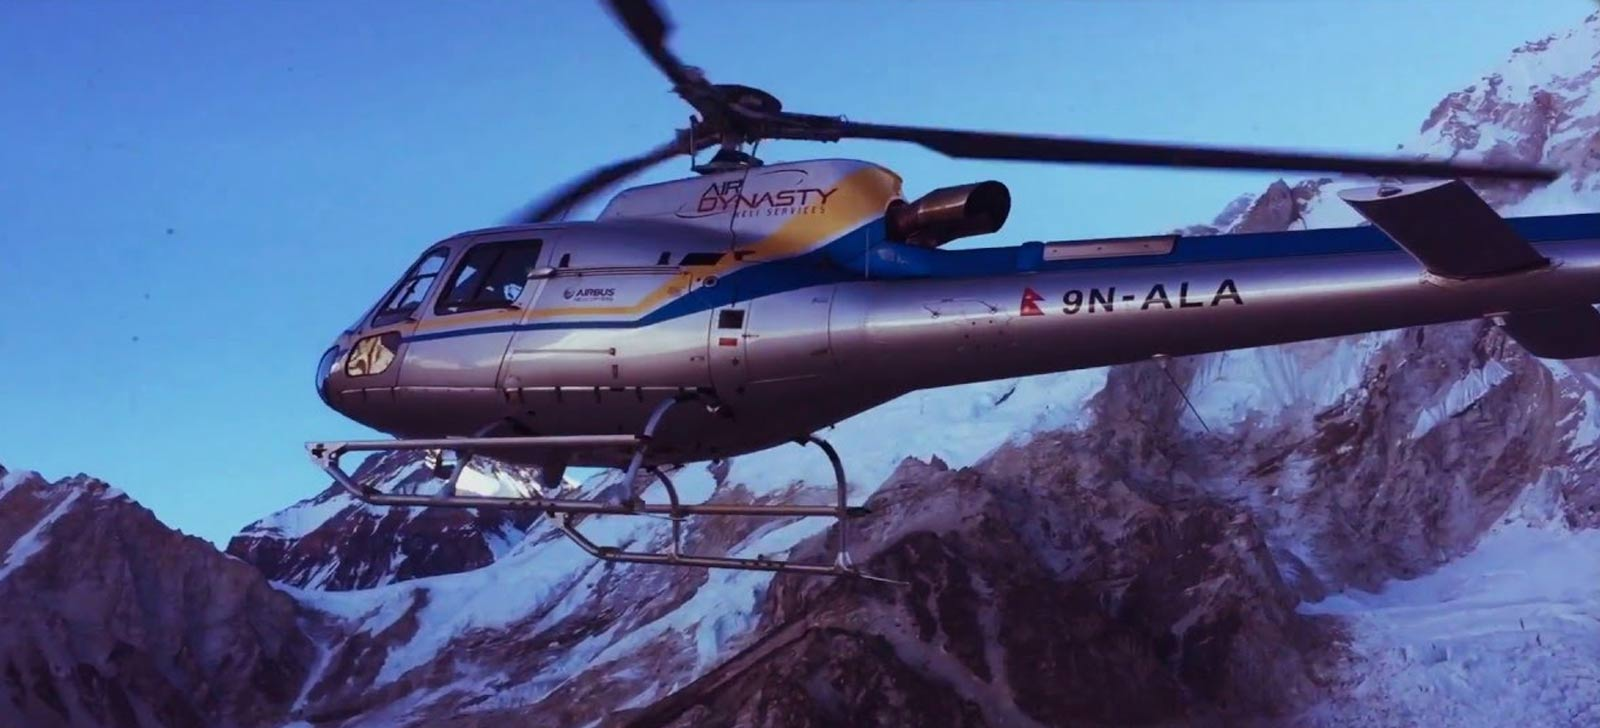 Daily Everest Heli-Flight